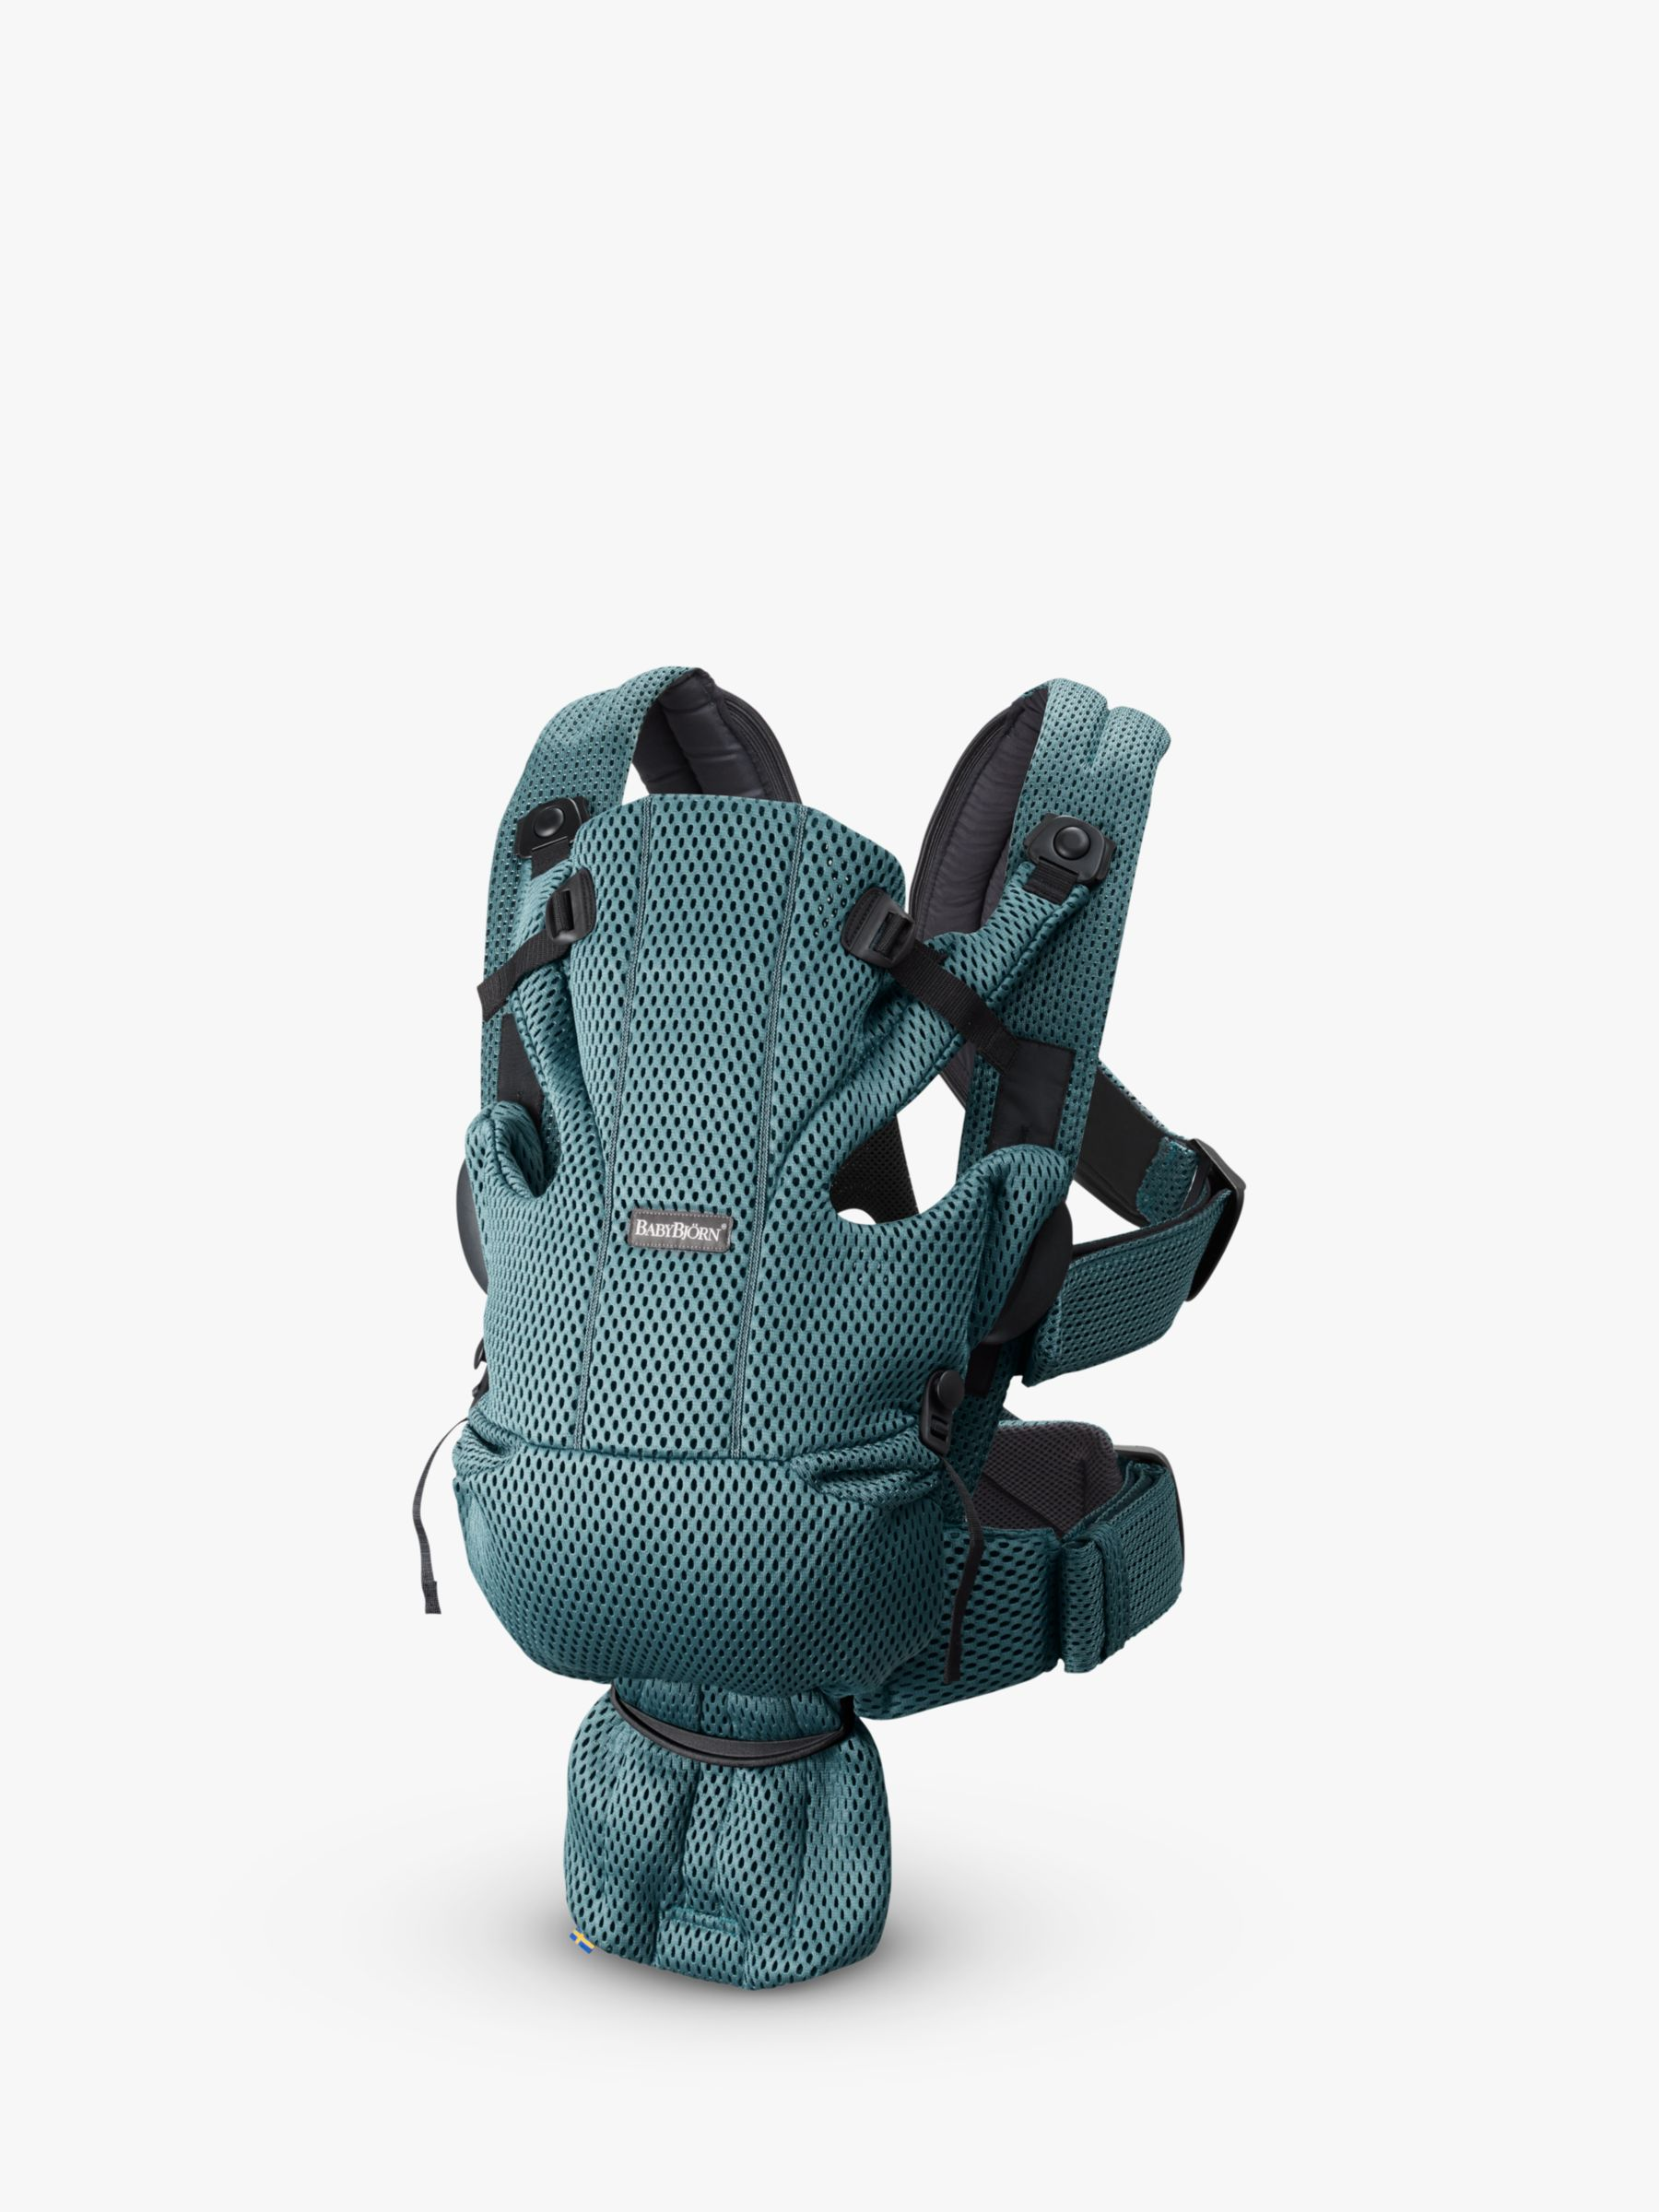 BabyBjorn BabyBjörn Move with 3D Mesh Baby Carrier, Sage